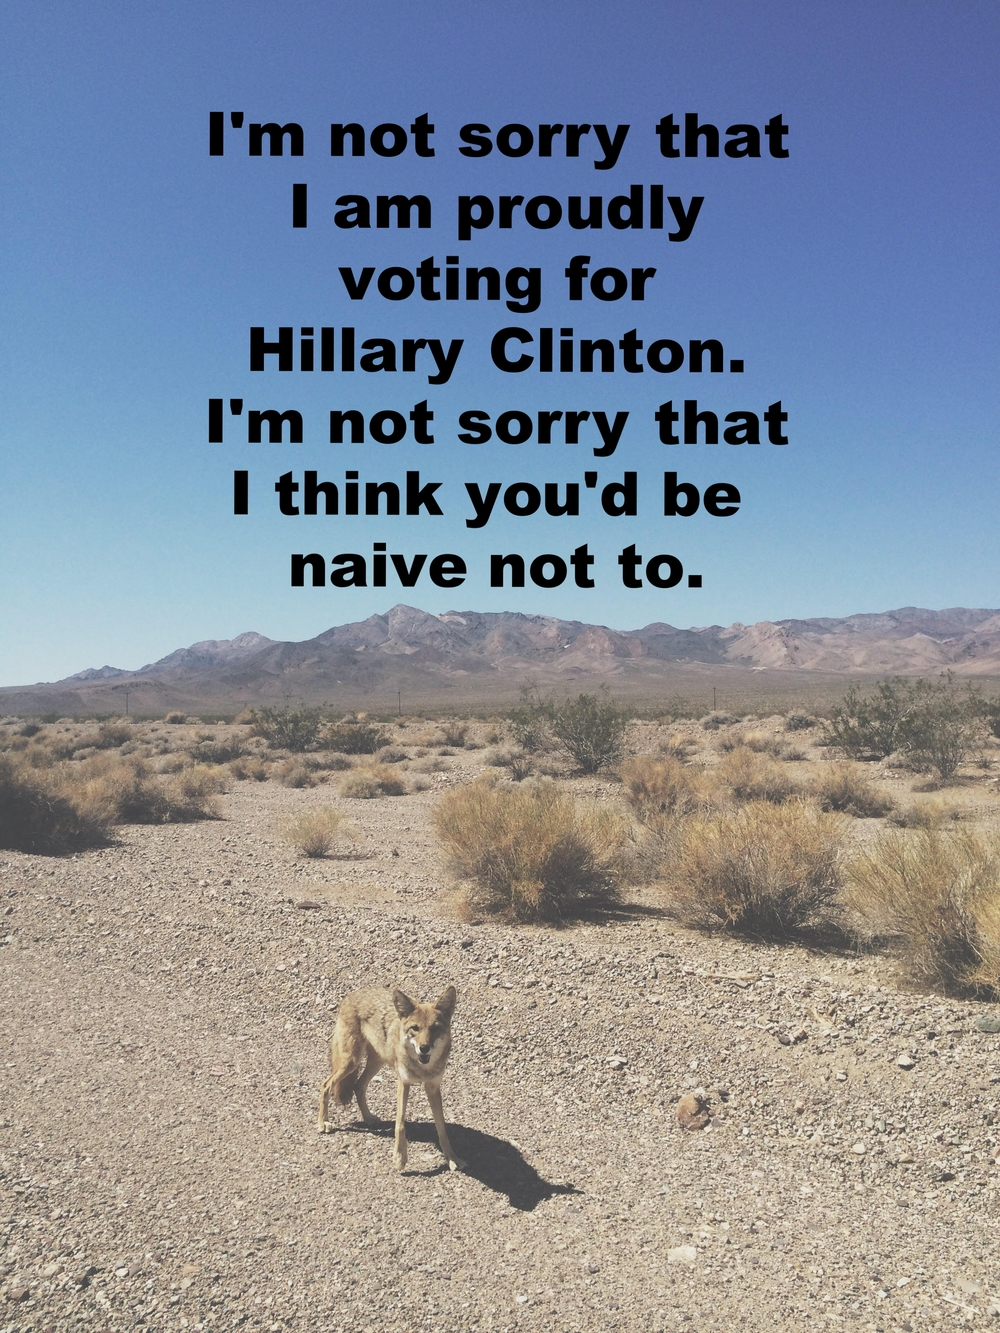 "Anonymous August 2 2016 Image of a swath of desert- gravel, sand, scrubby trees. Low mountains in the background. A small fox stands in the foreground, looking directly at the camera. ""I'm not sorry that I am proudly voting for Hillary Clinton. I'm not sorry that I think you'd be naive not to"" is overlaid."